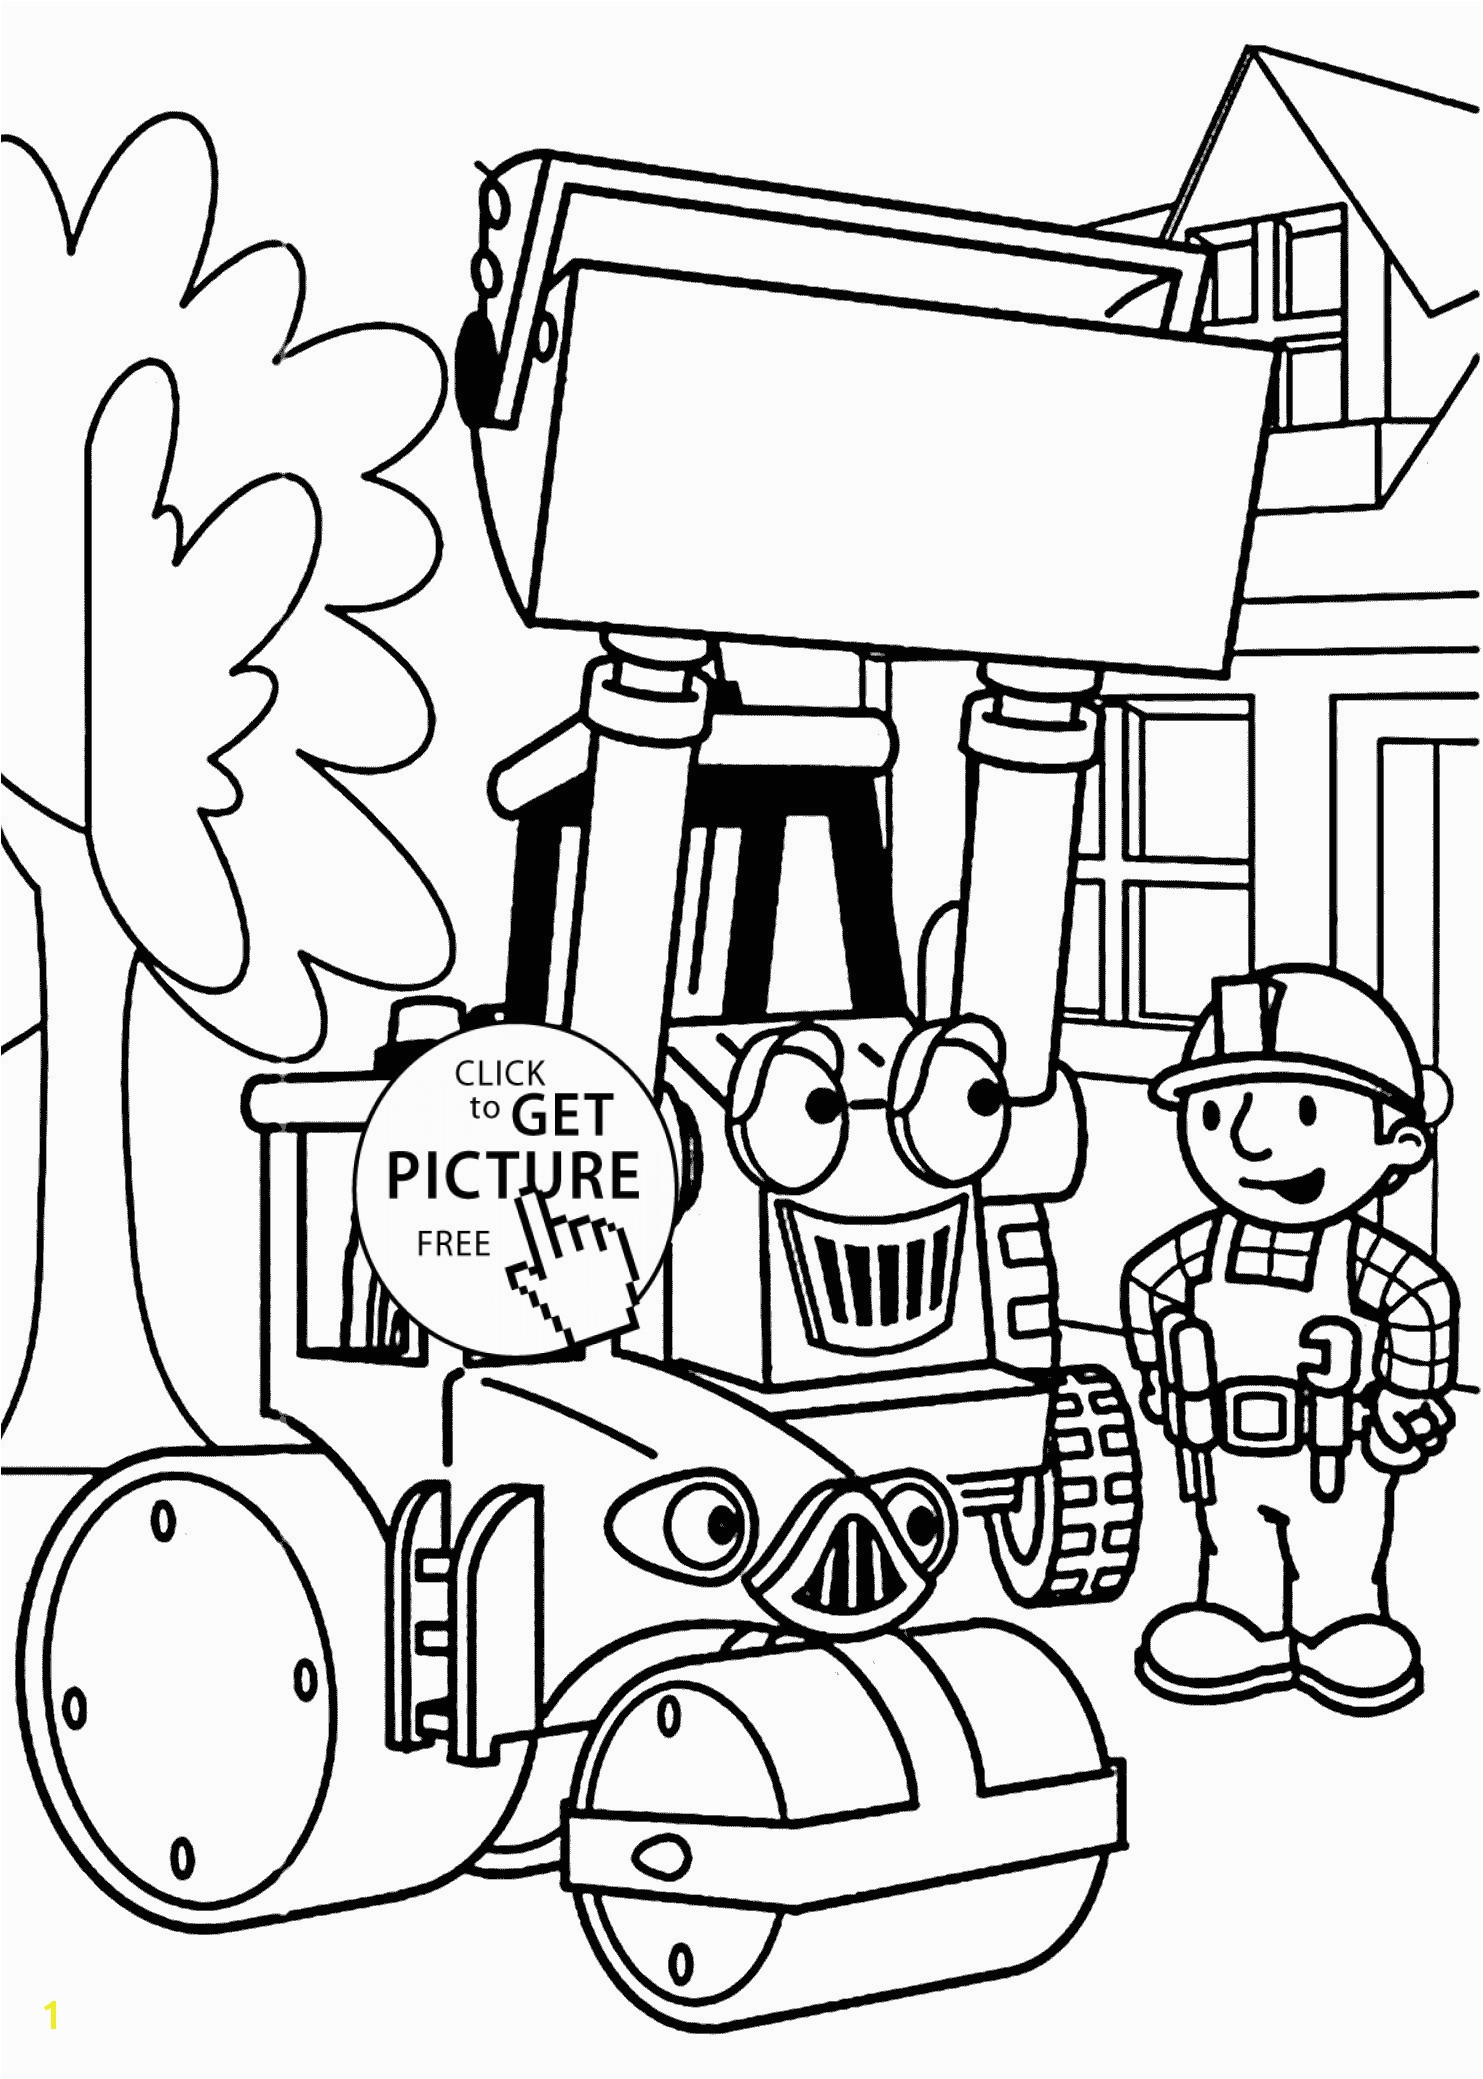 Bridge to Terabithia Coloring Pages Best Cool 12 Unique Bridge to Terabithia Coloring Pages – Coloring Sheets Gallery